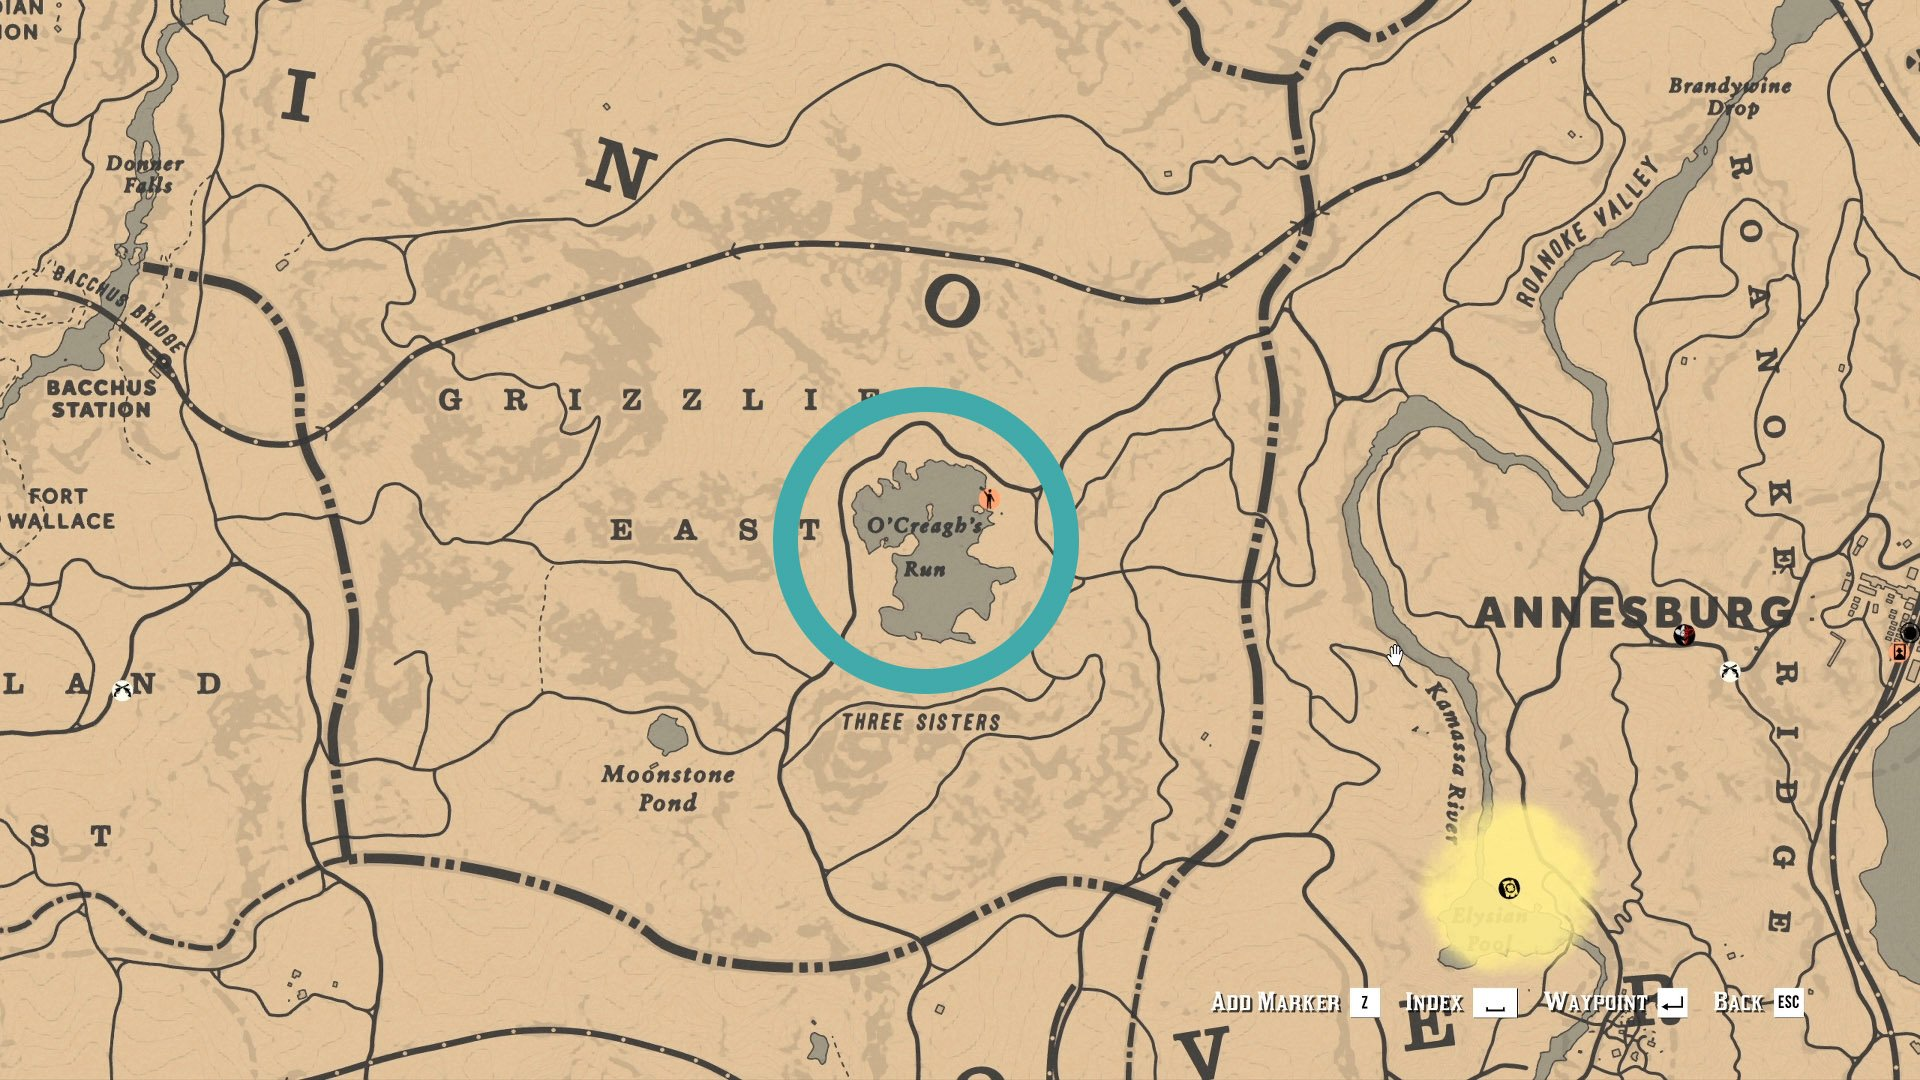 Red Dead Online - O'Creagh's Run Rock Bass location